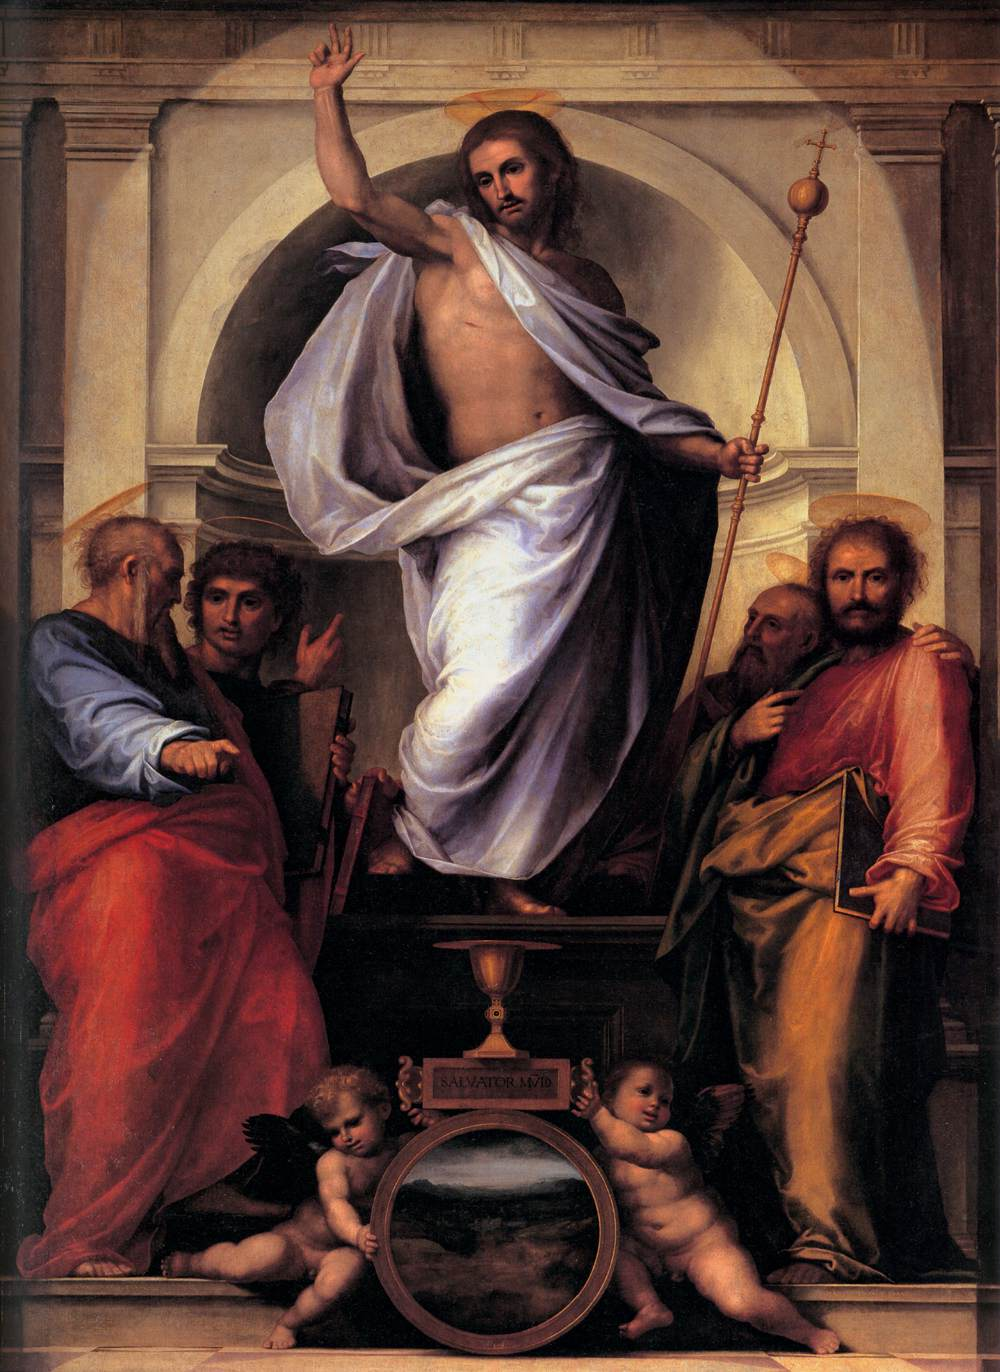 Christ with the Four Evangelists - Fra Bartolomeo